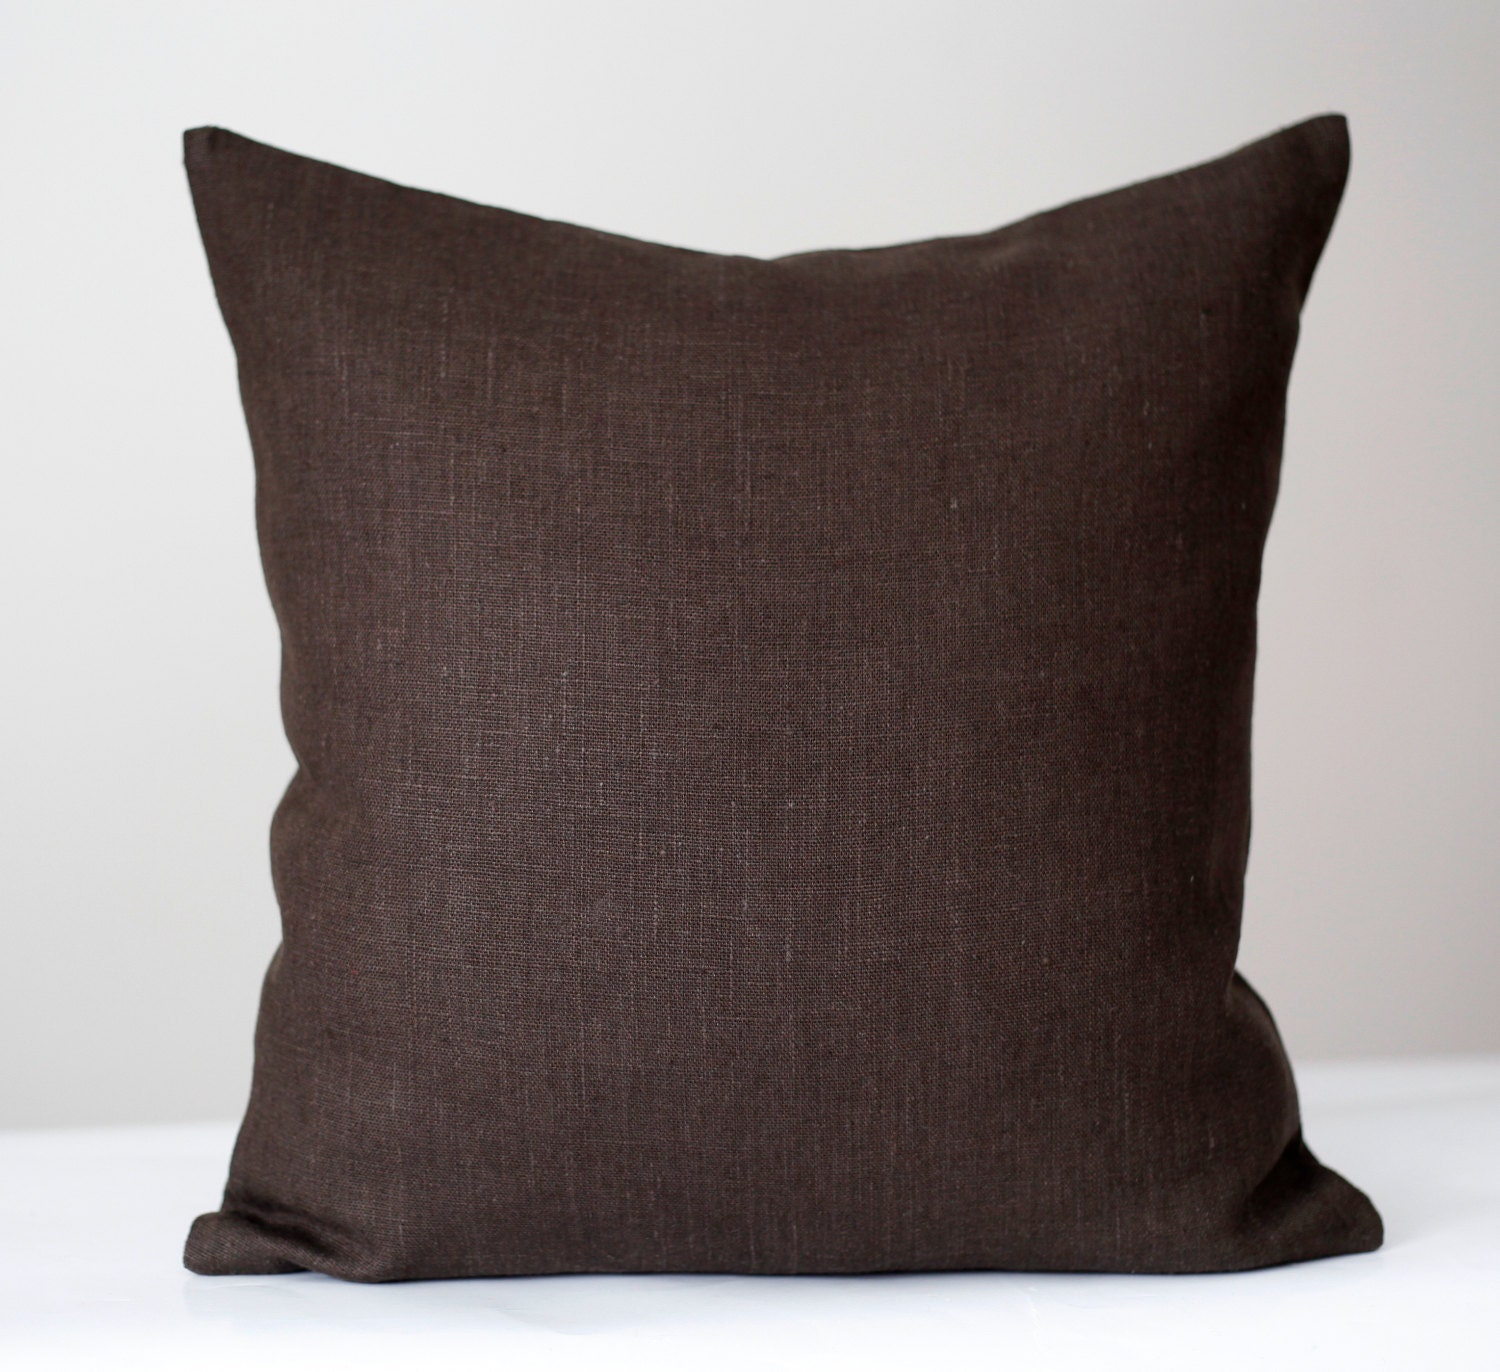 Throw Pillows For A Chocolate Brown Couch : Linen sham chocolate brown throw pillows pillow cover